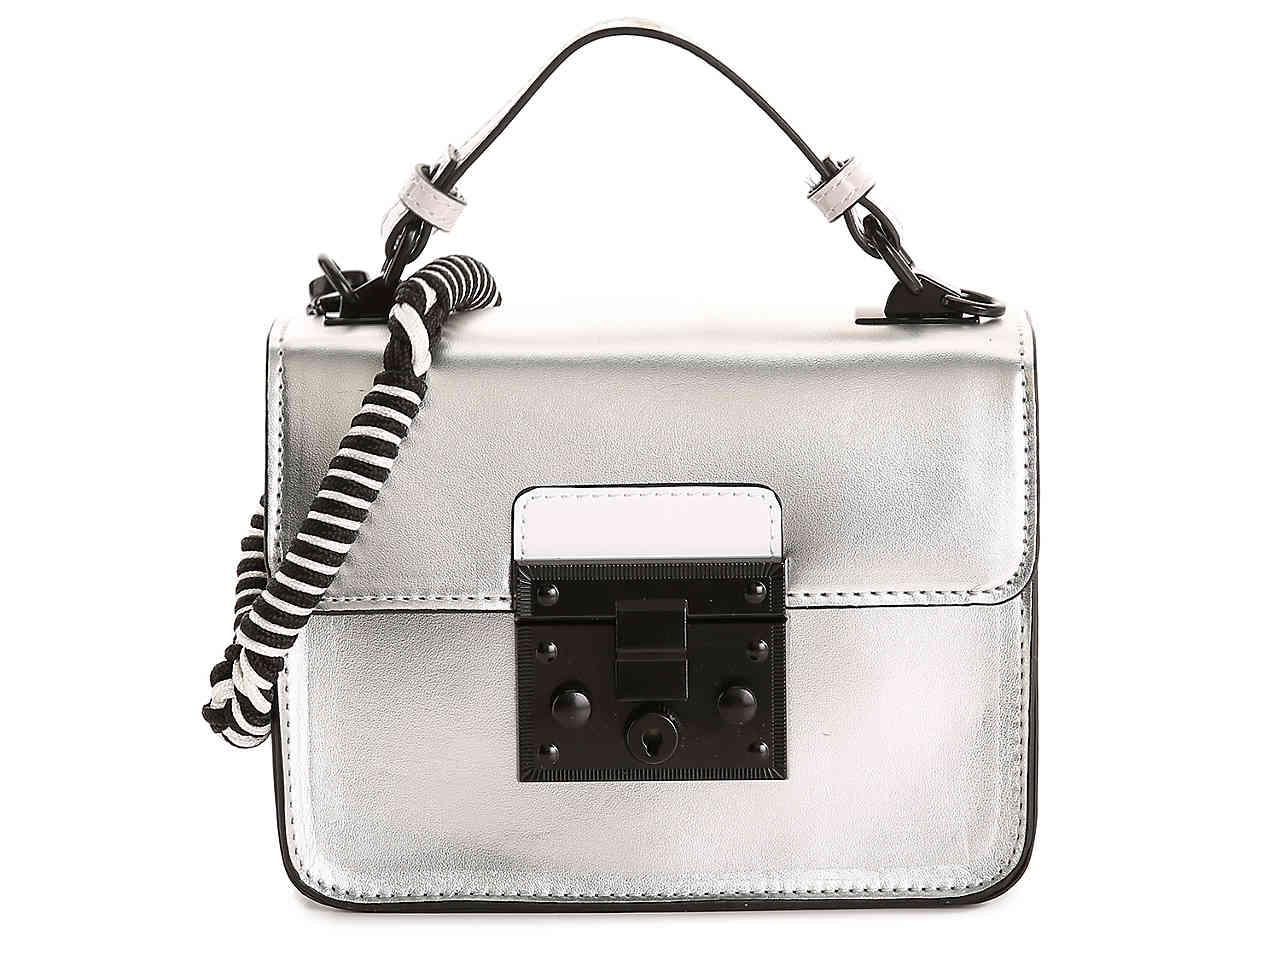 Lyst - Steve Madden Beffie Crossbody Bag in Metallic 99d94960e3b58